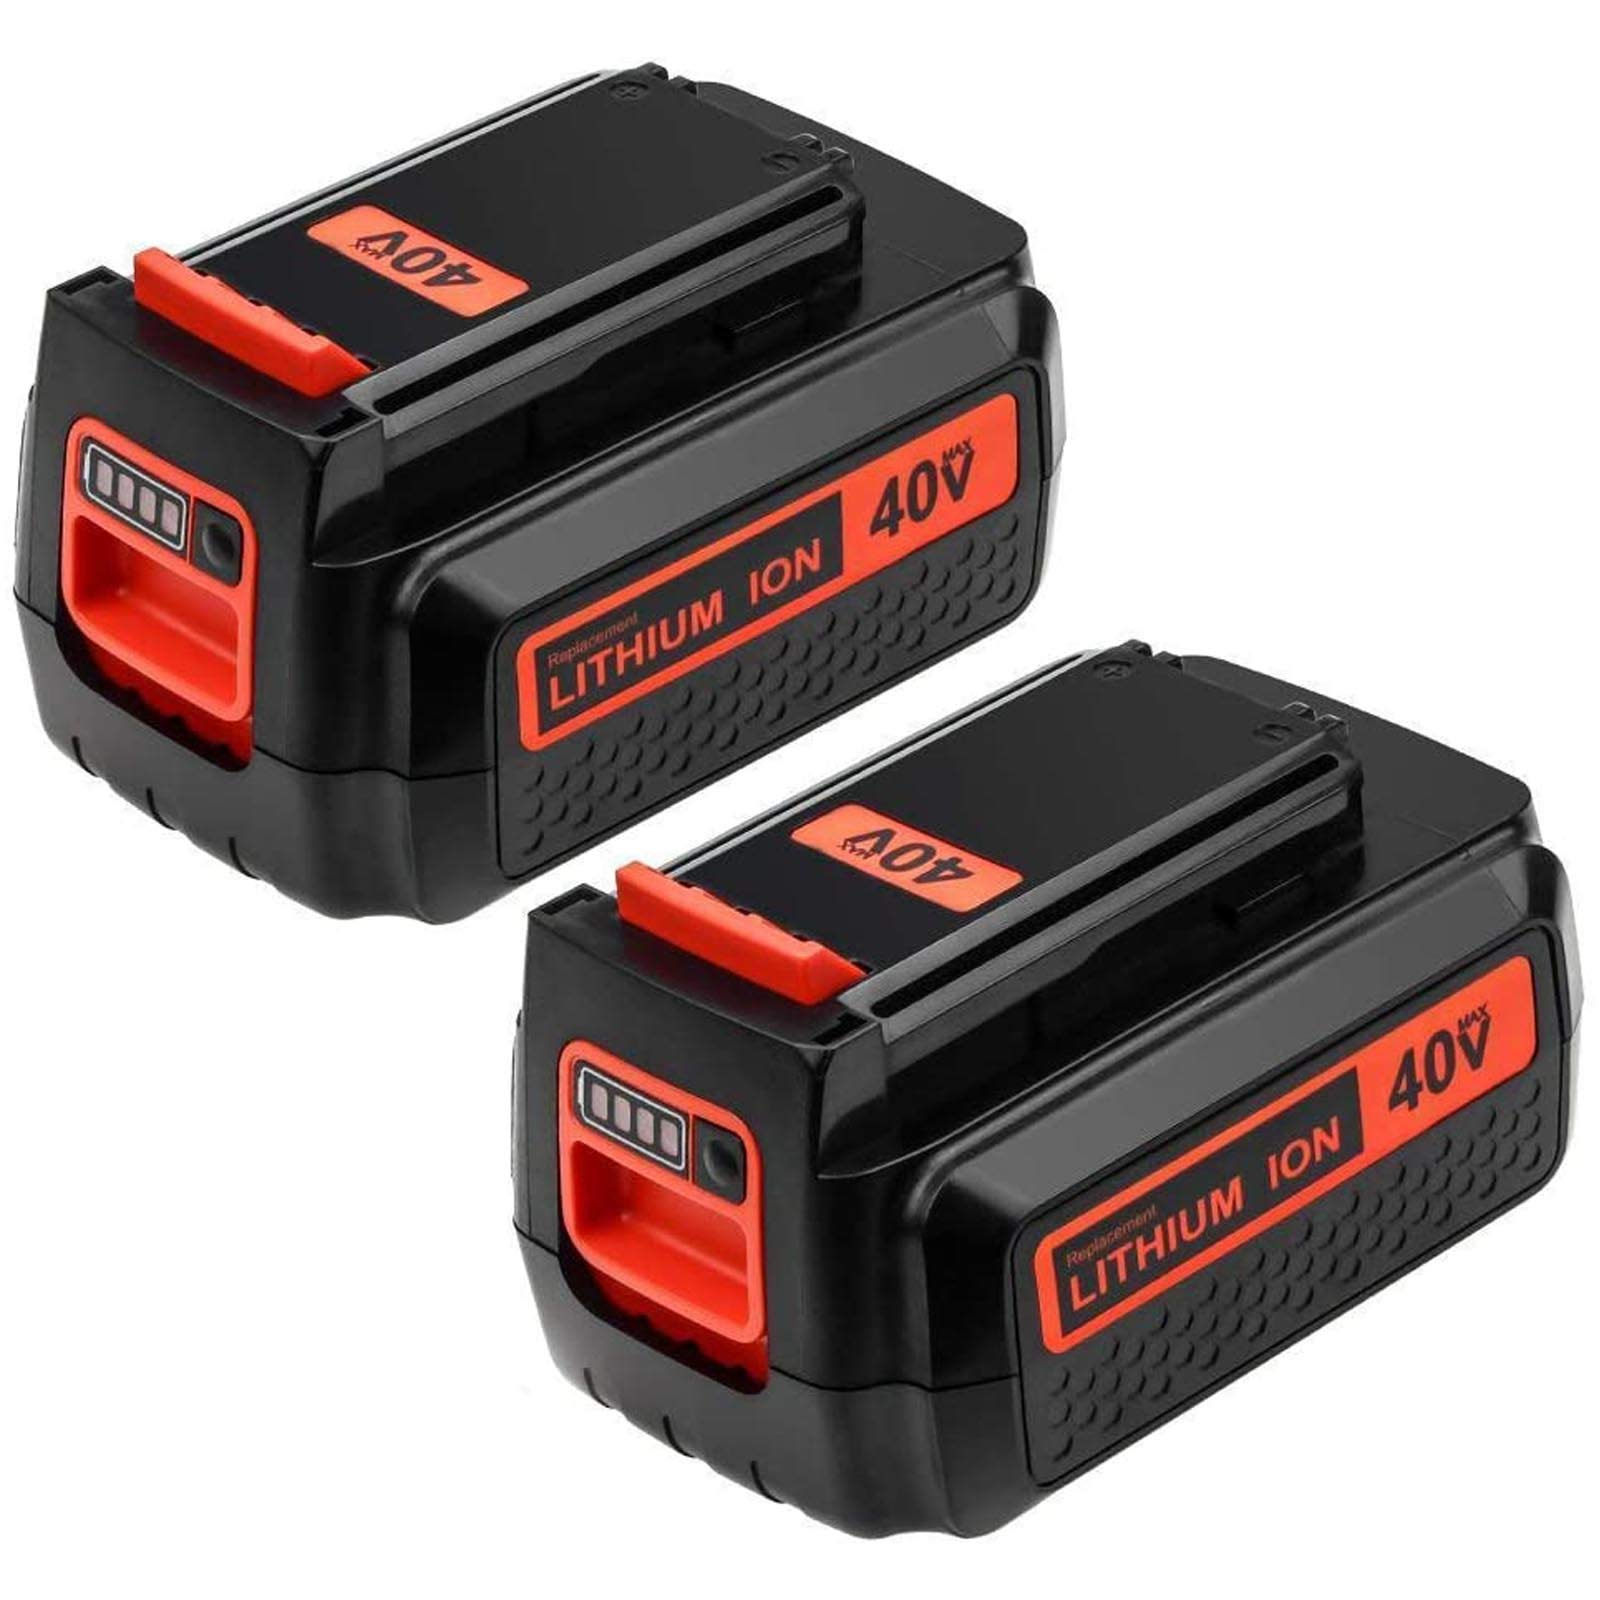 2Packs 40 Volt LBX2040 Replacement Battery Compatible with Black and Decker 40V Lithium Battery MAX LBXR36 LBXR2036 LST540 LCS1240 LBX1540 LST136W Cordless Tools